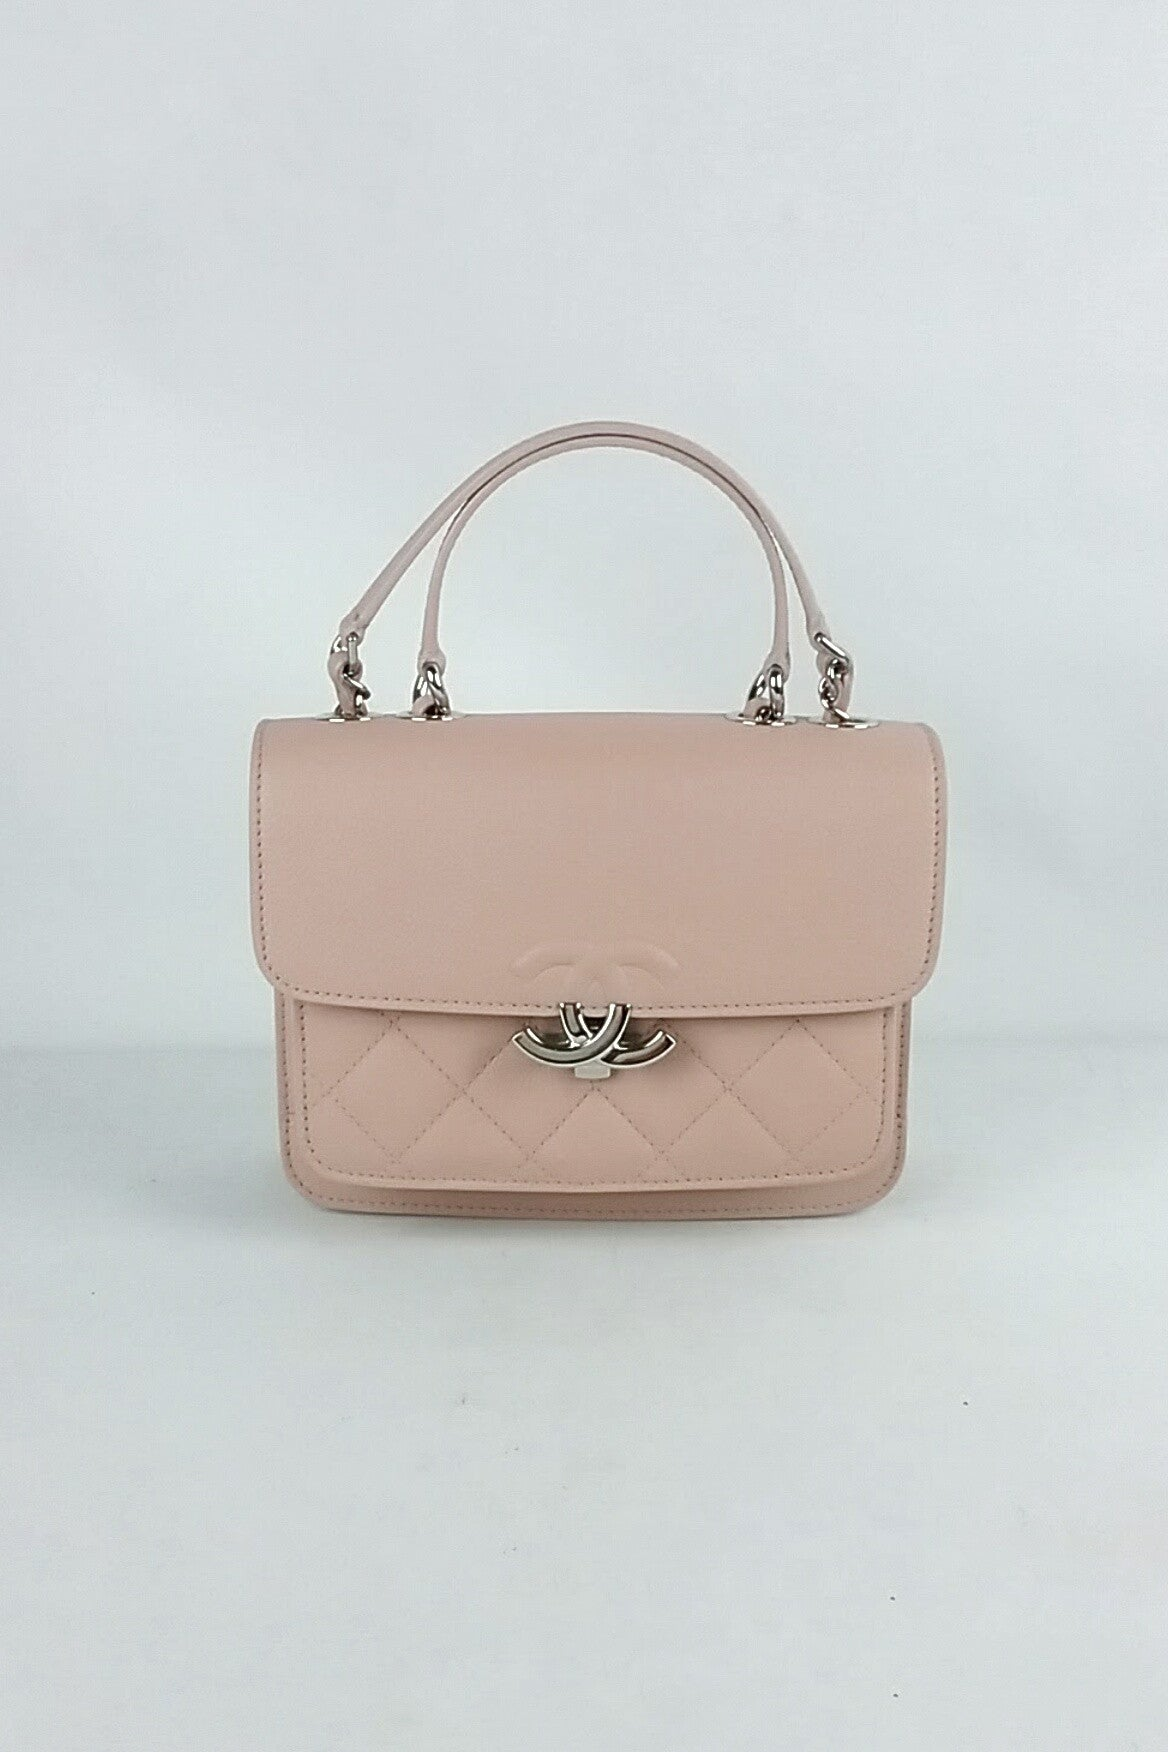 Blush Pink Calfskin Flap Bag